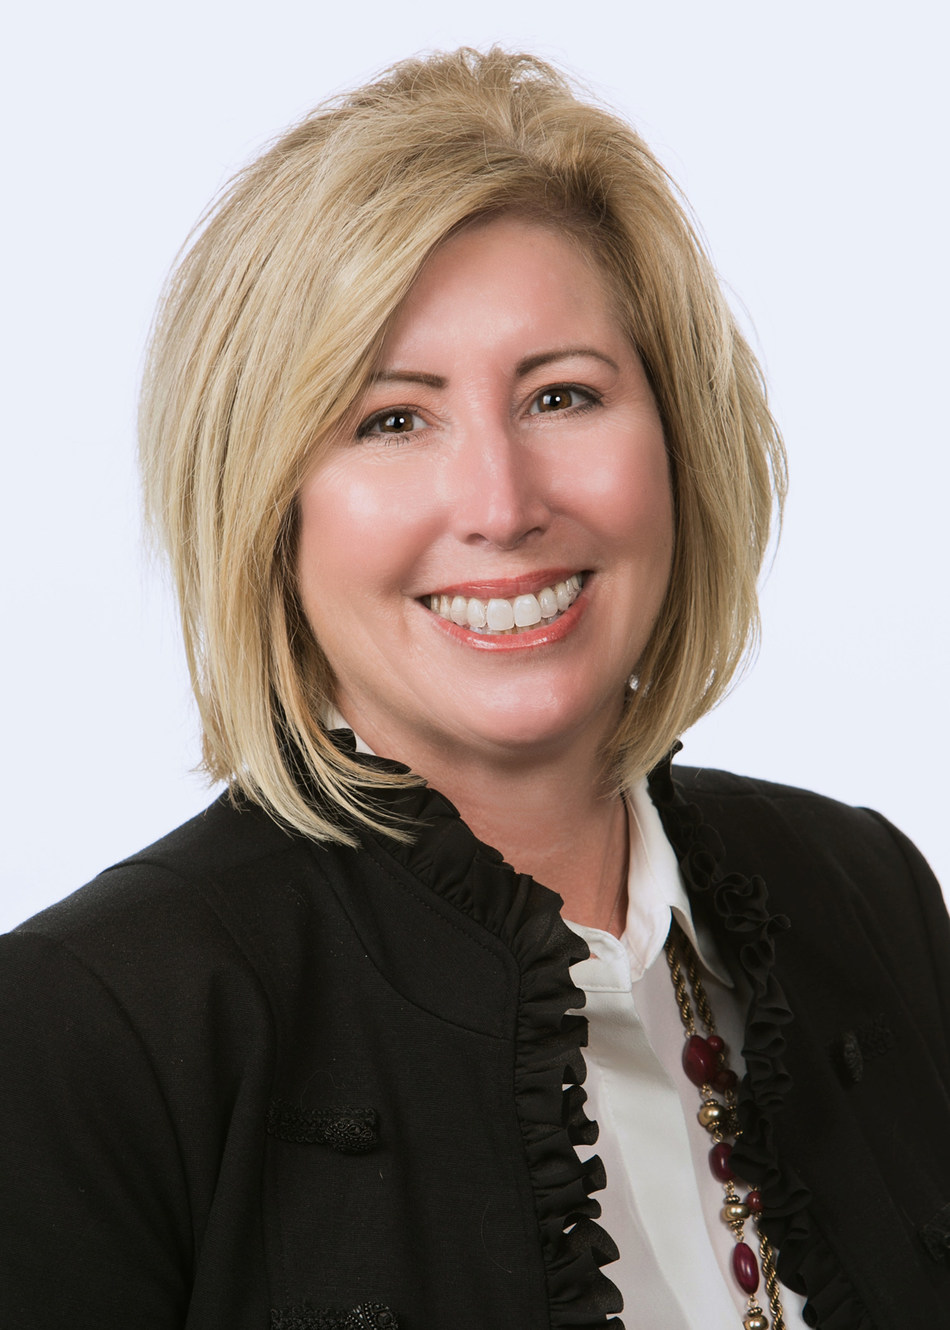 Bank of Southern California Names Lori Boucher, Vice President Branch Manager in La Quinta